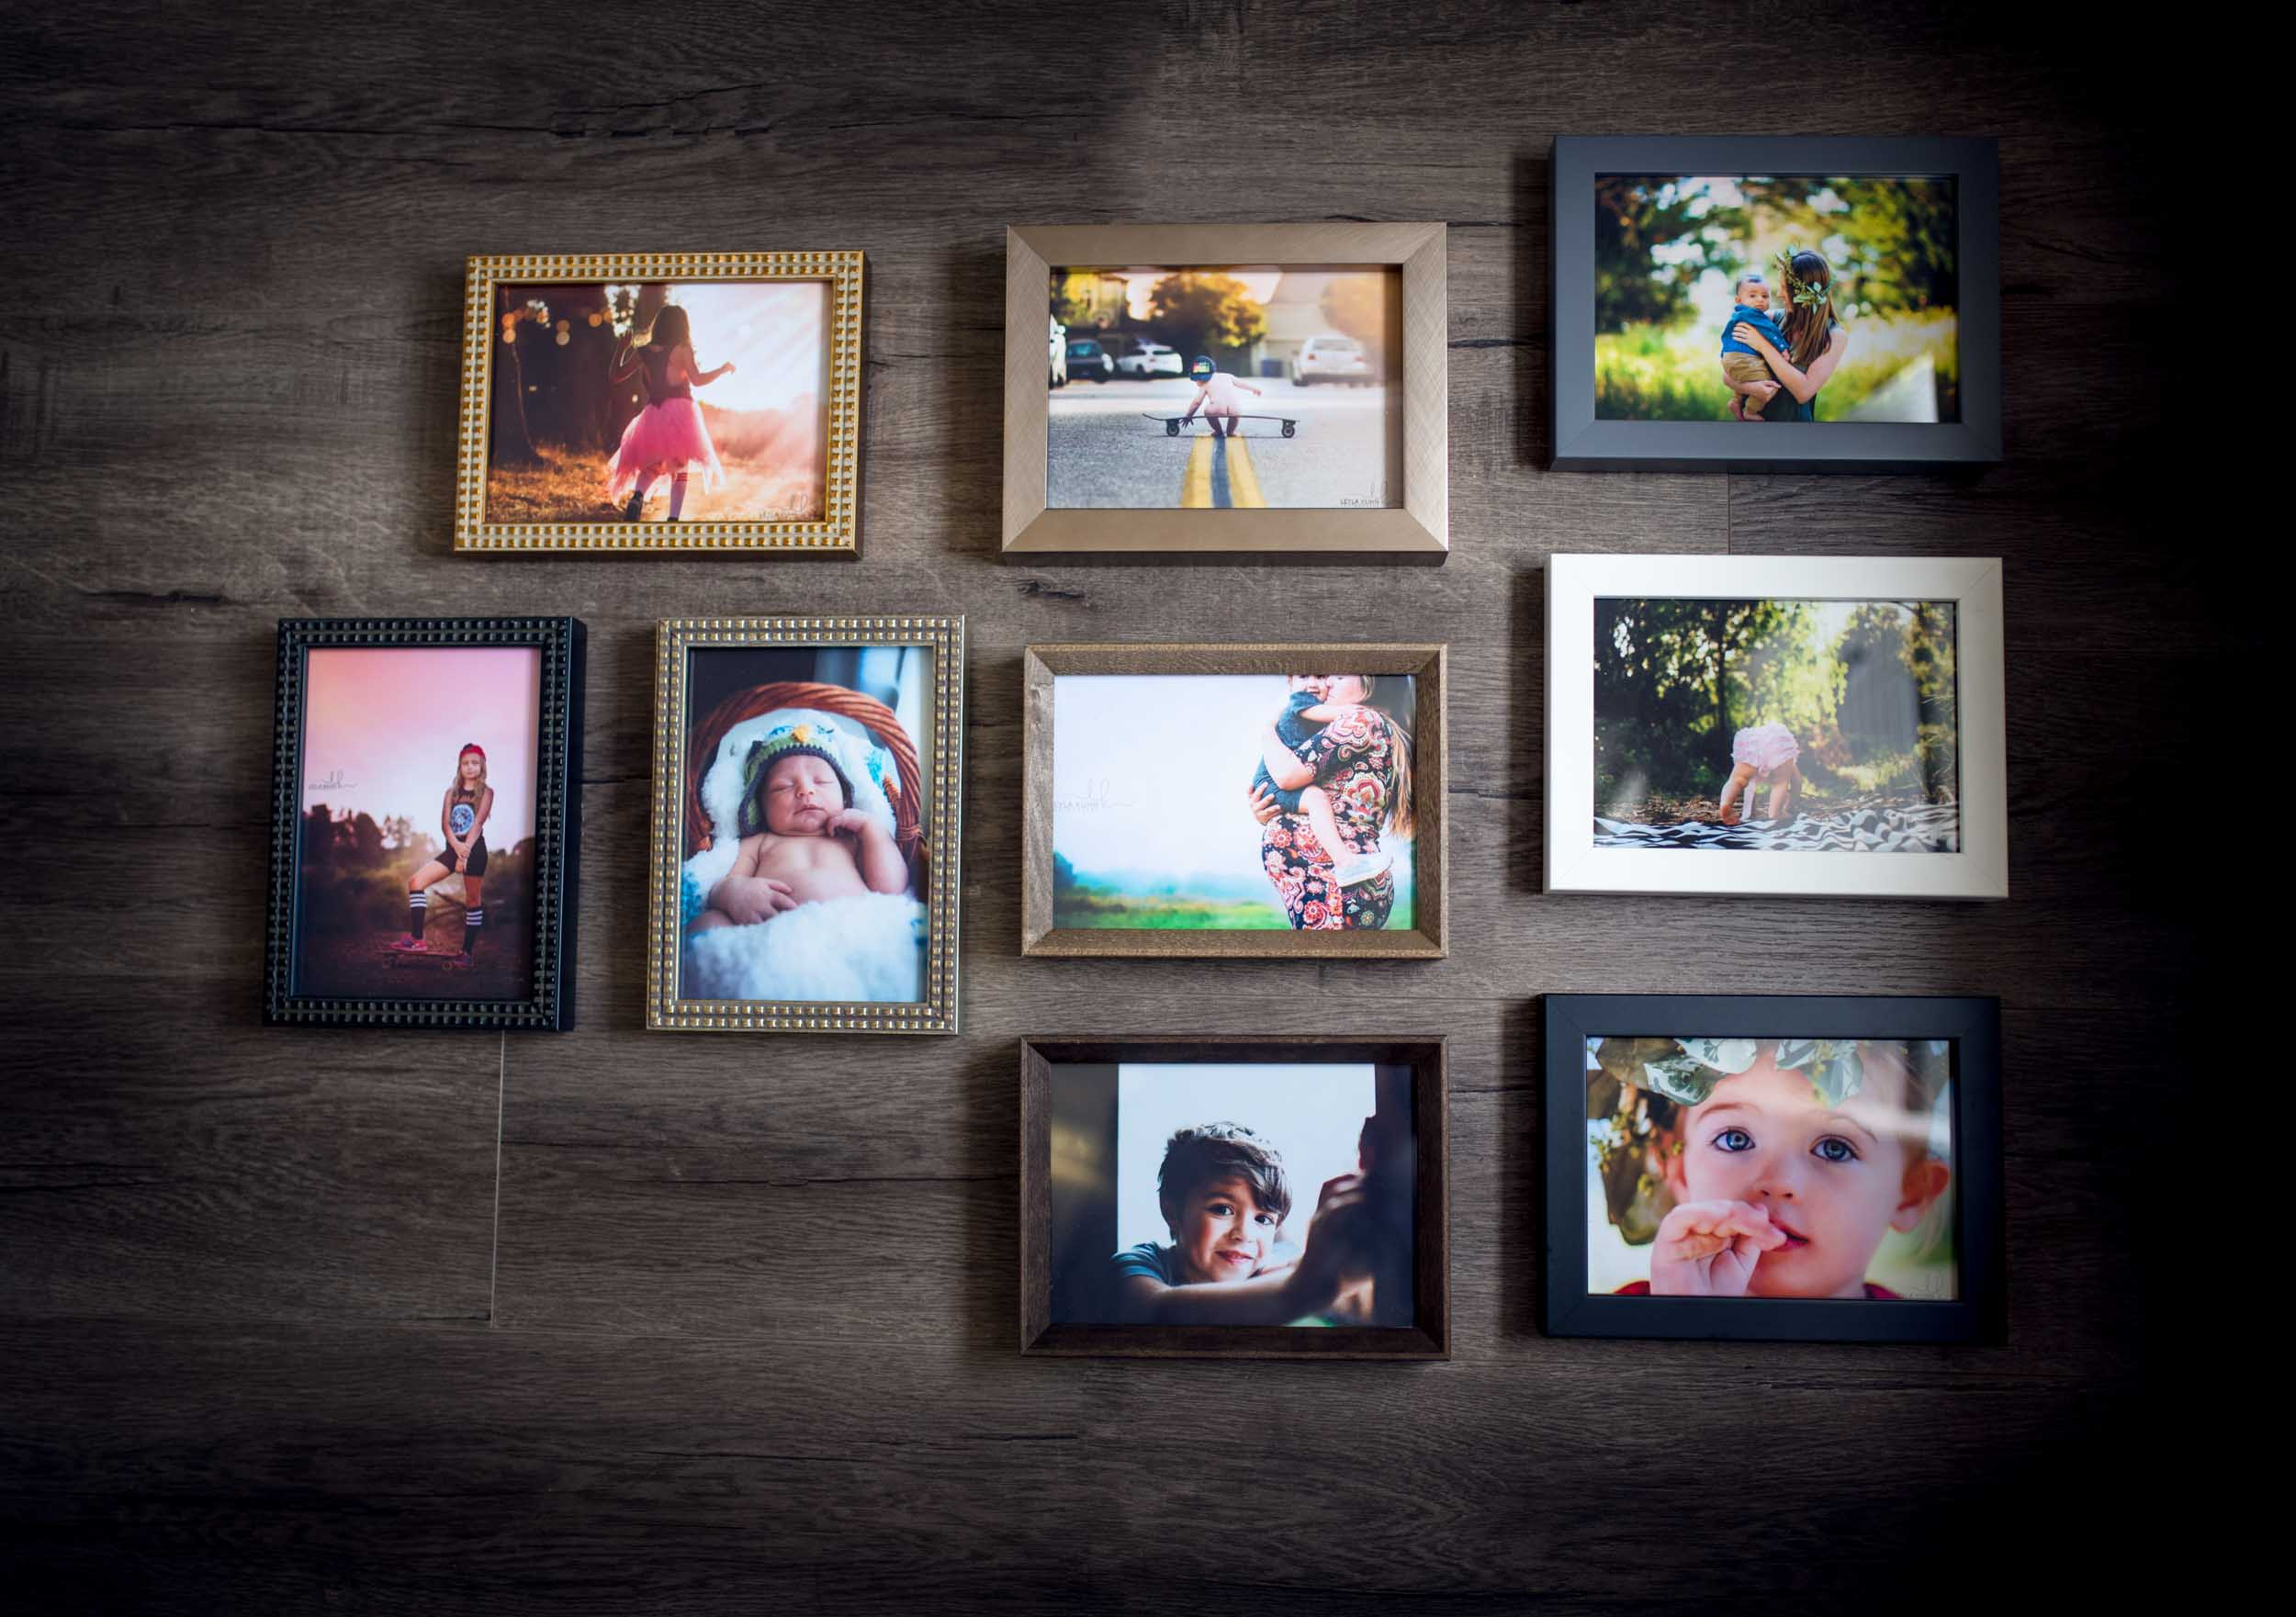 Framed Prints - My frames are made by people, not machines in Portland, Oregon. The archival construction and considered style of the frames will without a doubt preserve your photographs and beautifully accent any decor.Framed prints begin at $115 and are ready to display and add life to your home.